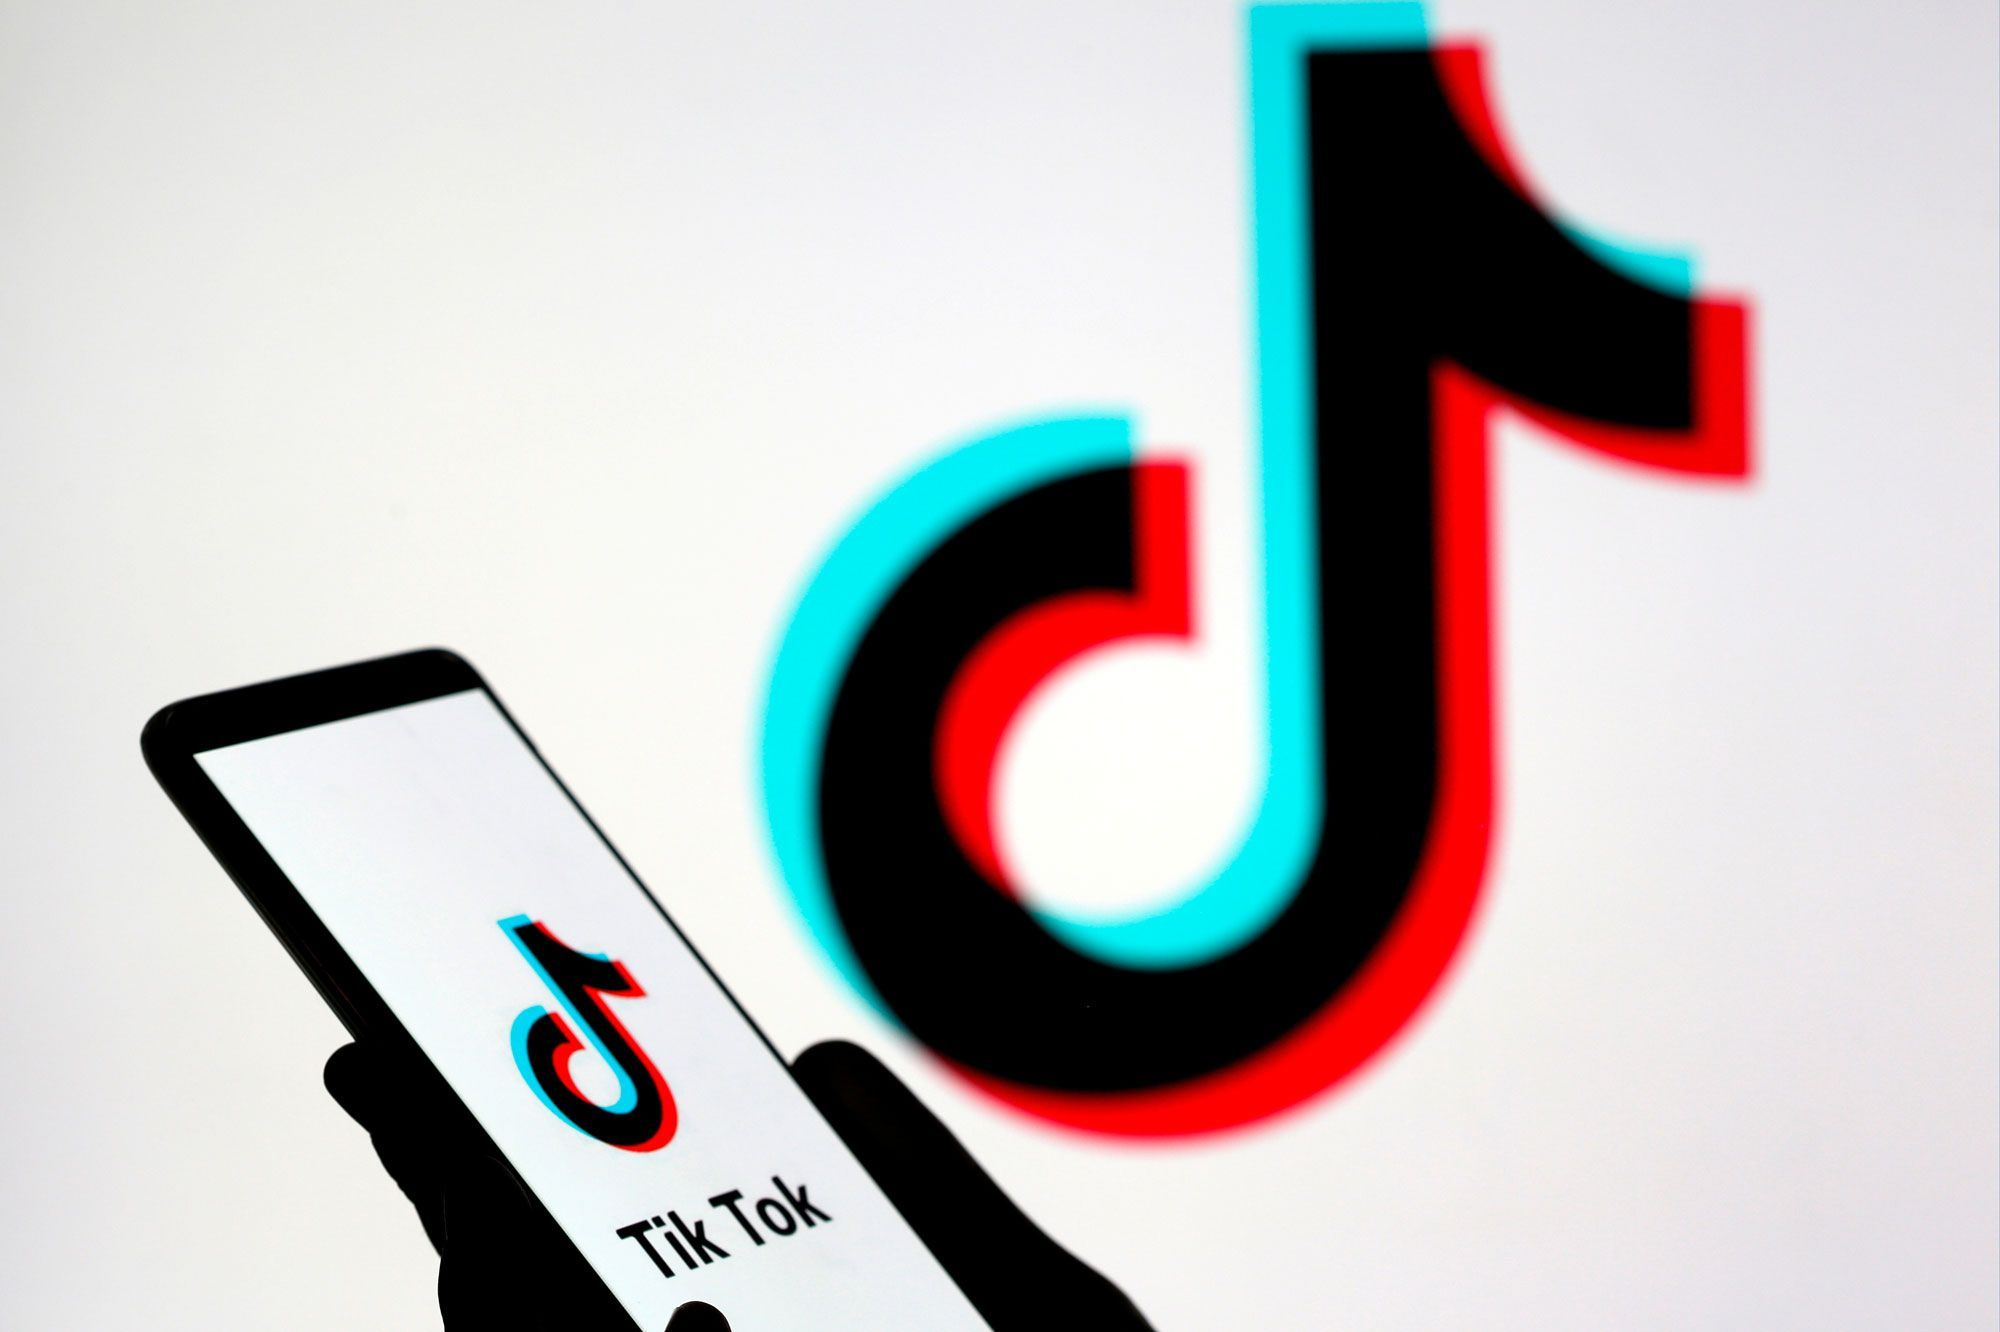 L'affaire TikTok : un accord finalement possible entre Pékin et Washington ?